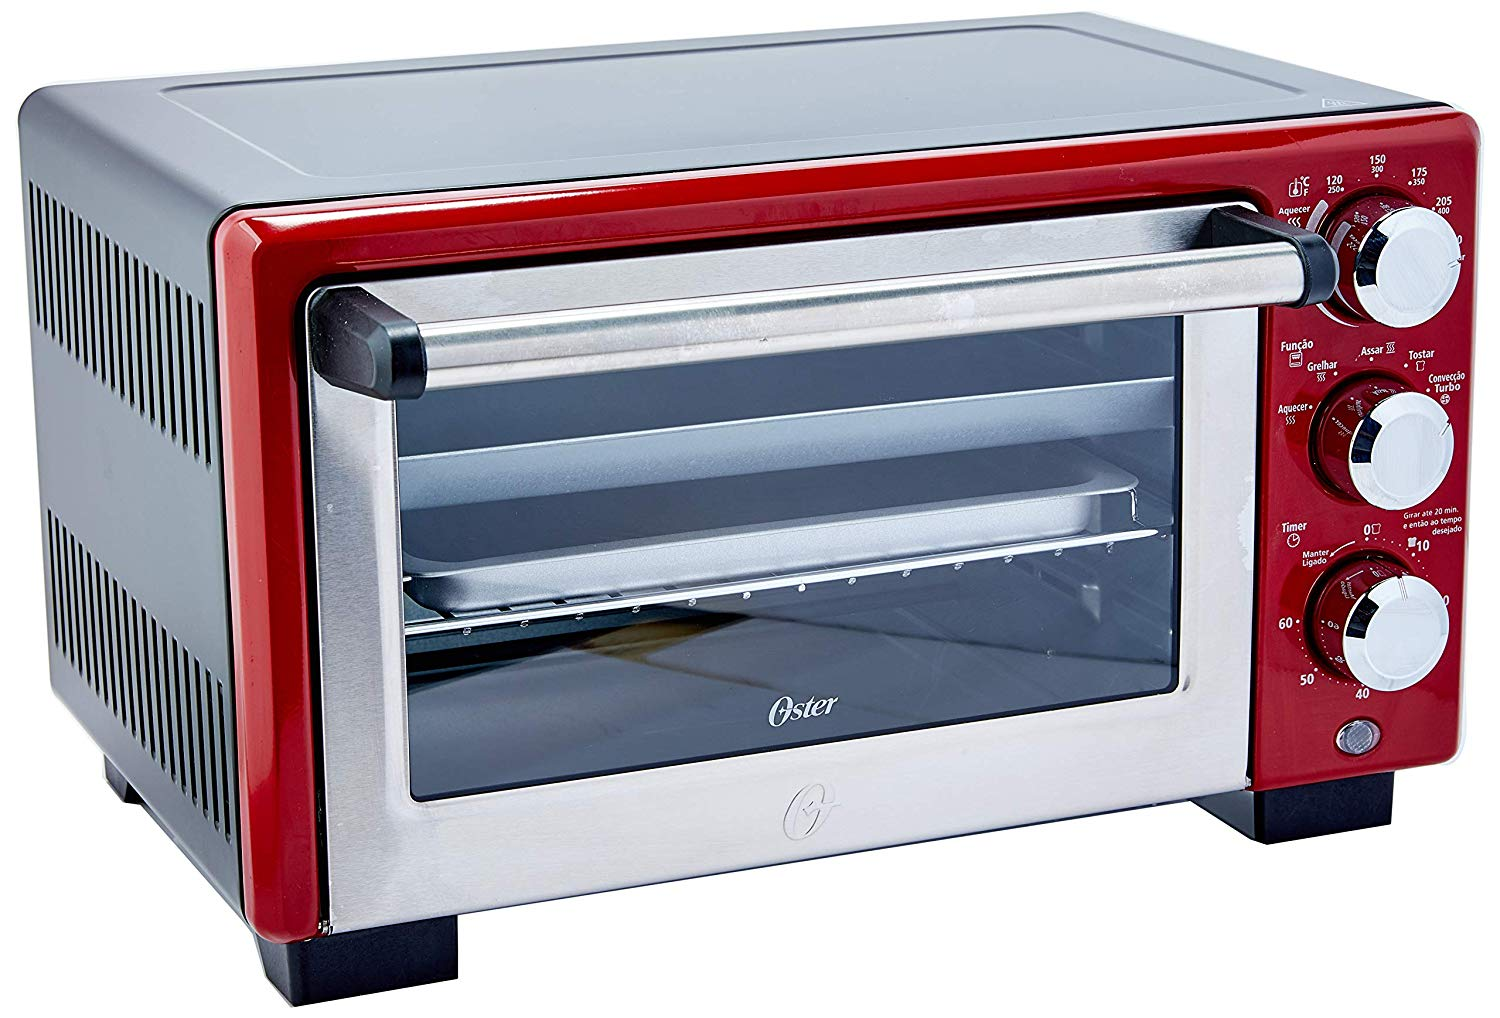 Forno Elétrico Oster Convection Cook 7118R 18L